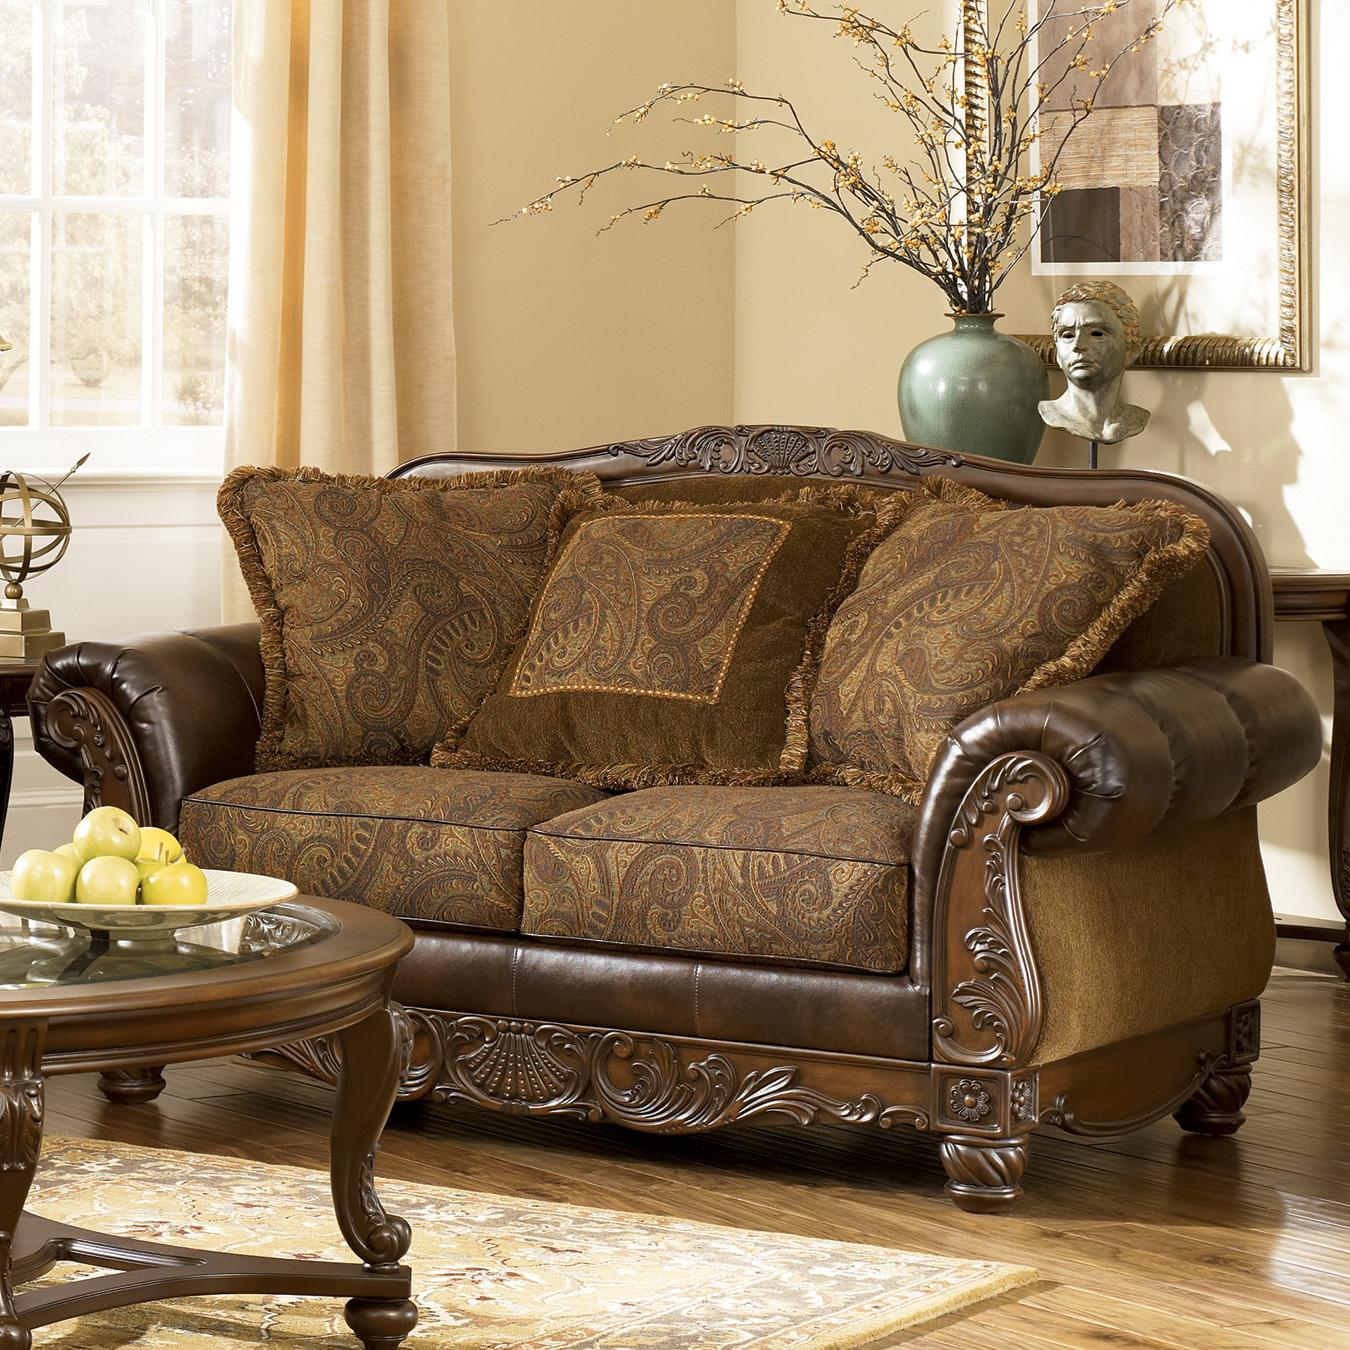 Signature Design By Ashley Fresco DuraBlend   Antique Loveseat   Item  Number: 6310035